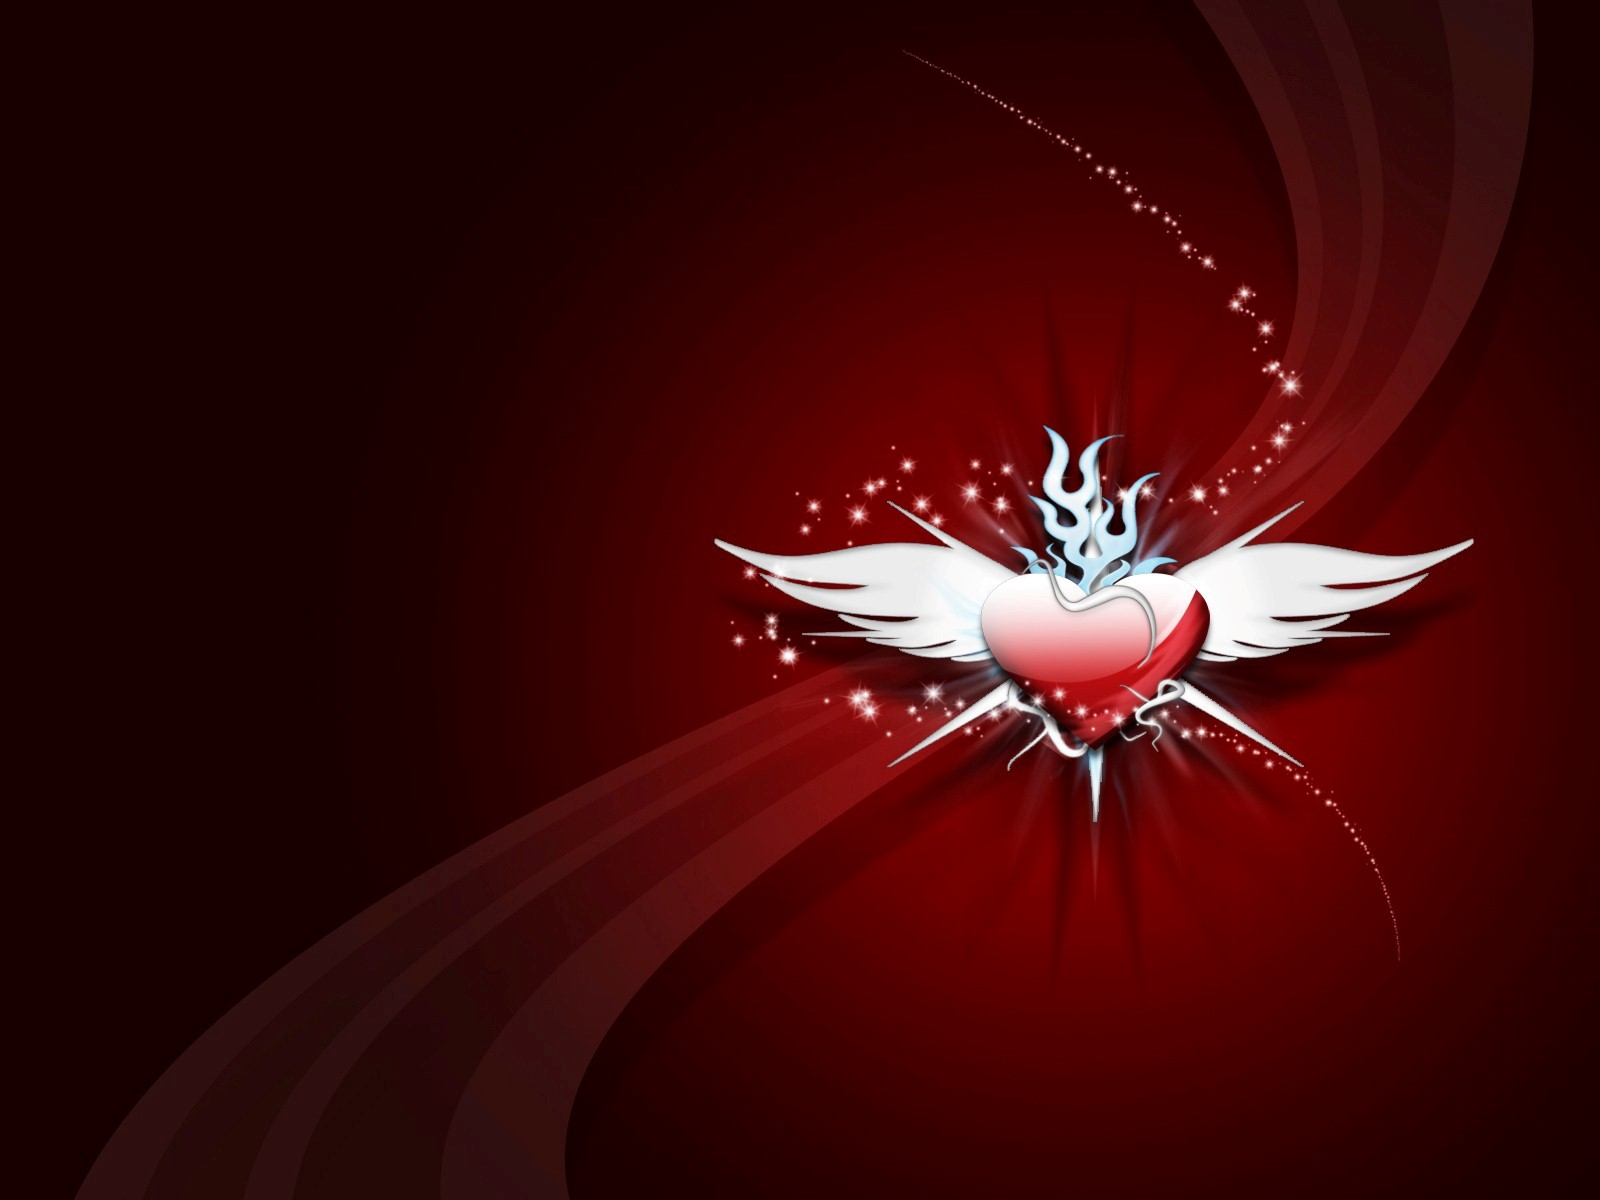 Hd Wallpapers Hdwallpapers Org In Love Heart Backgrounds Nice